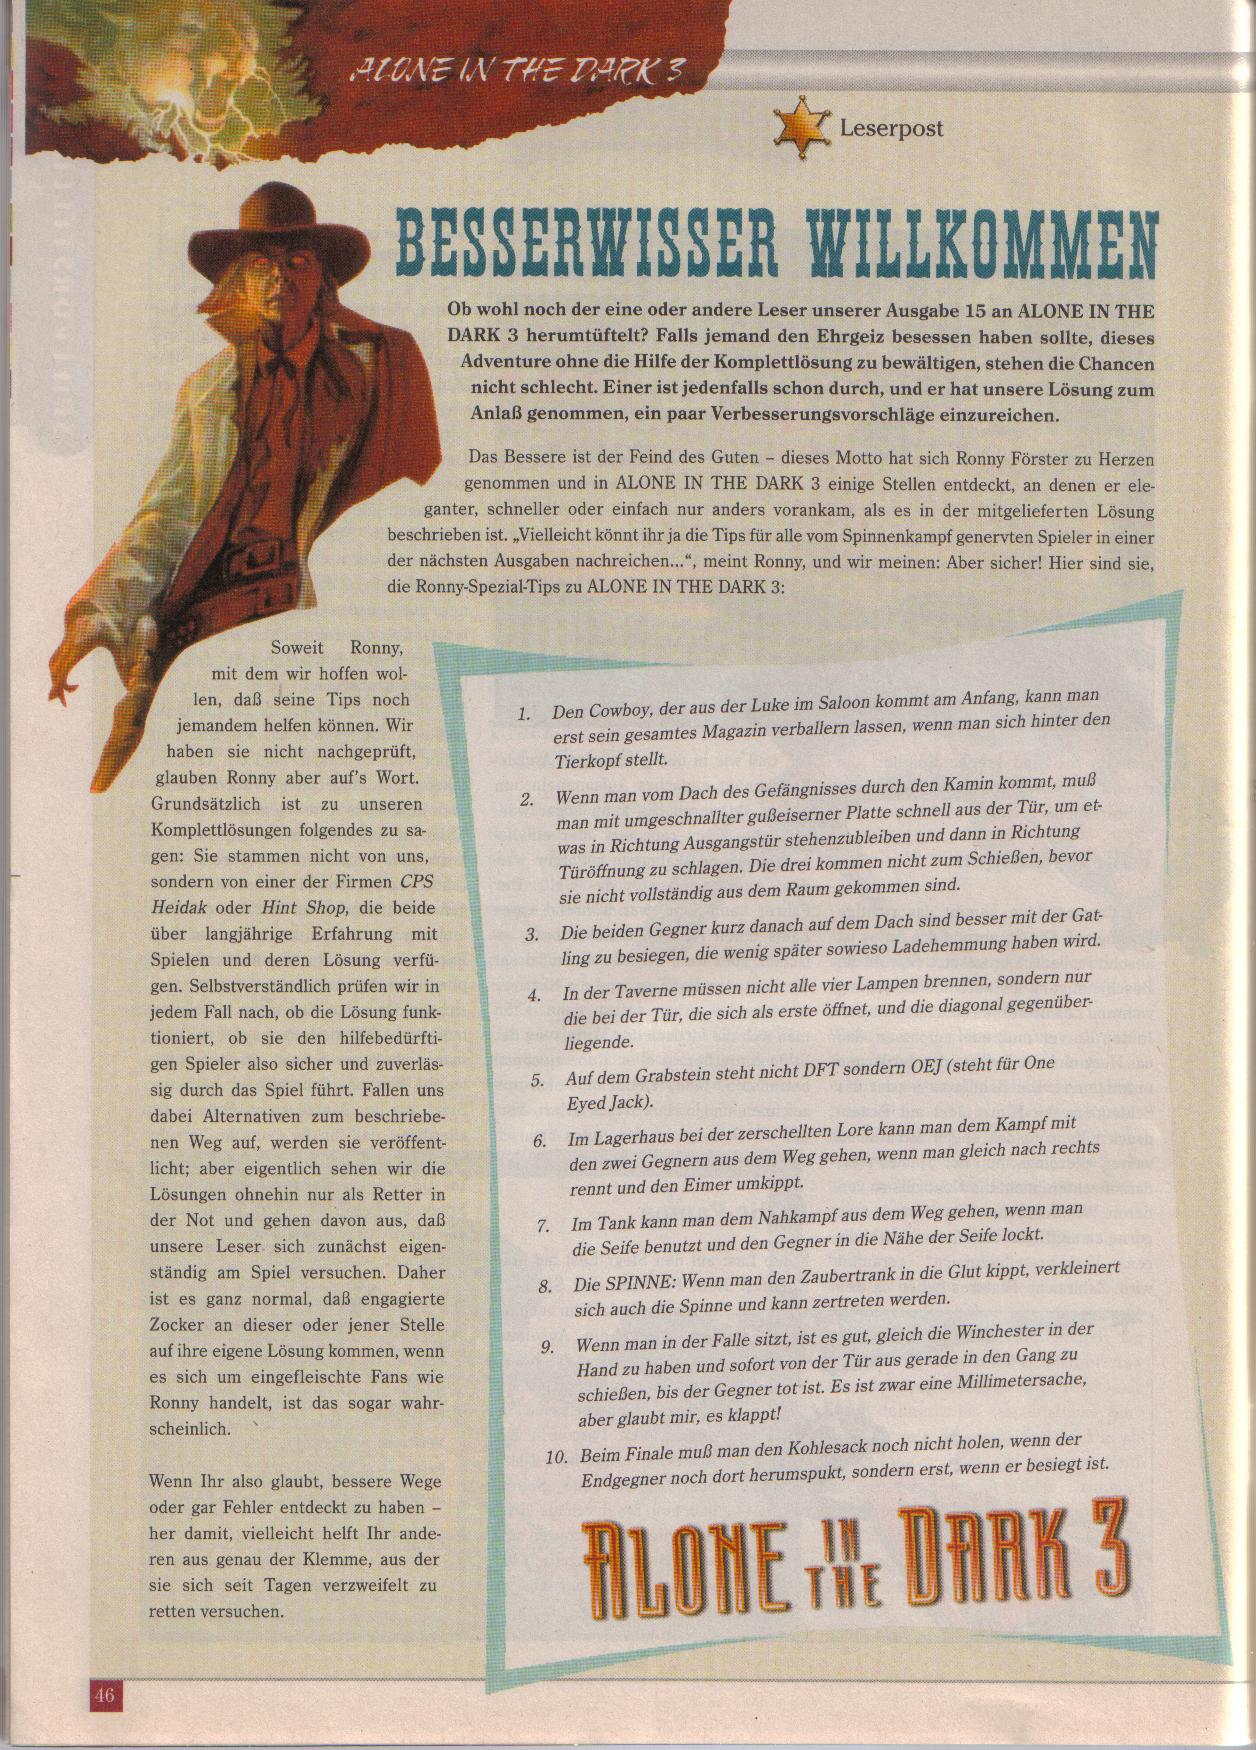 Dungeon Master II for PC (German, Best Seller Games) Page 46